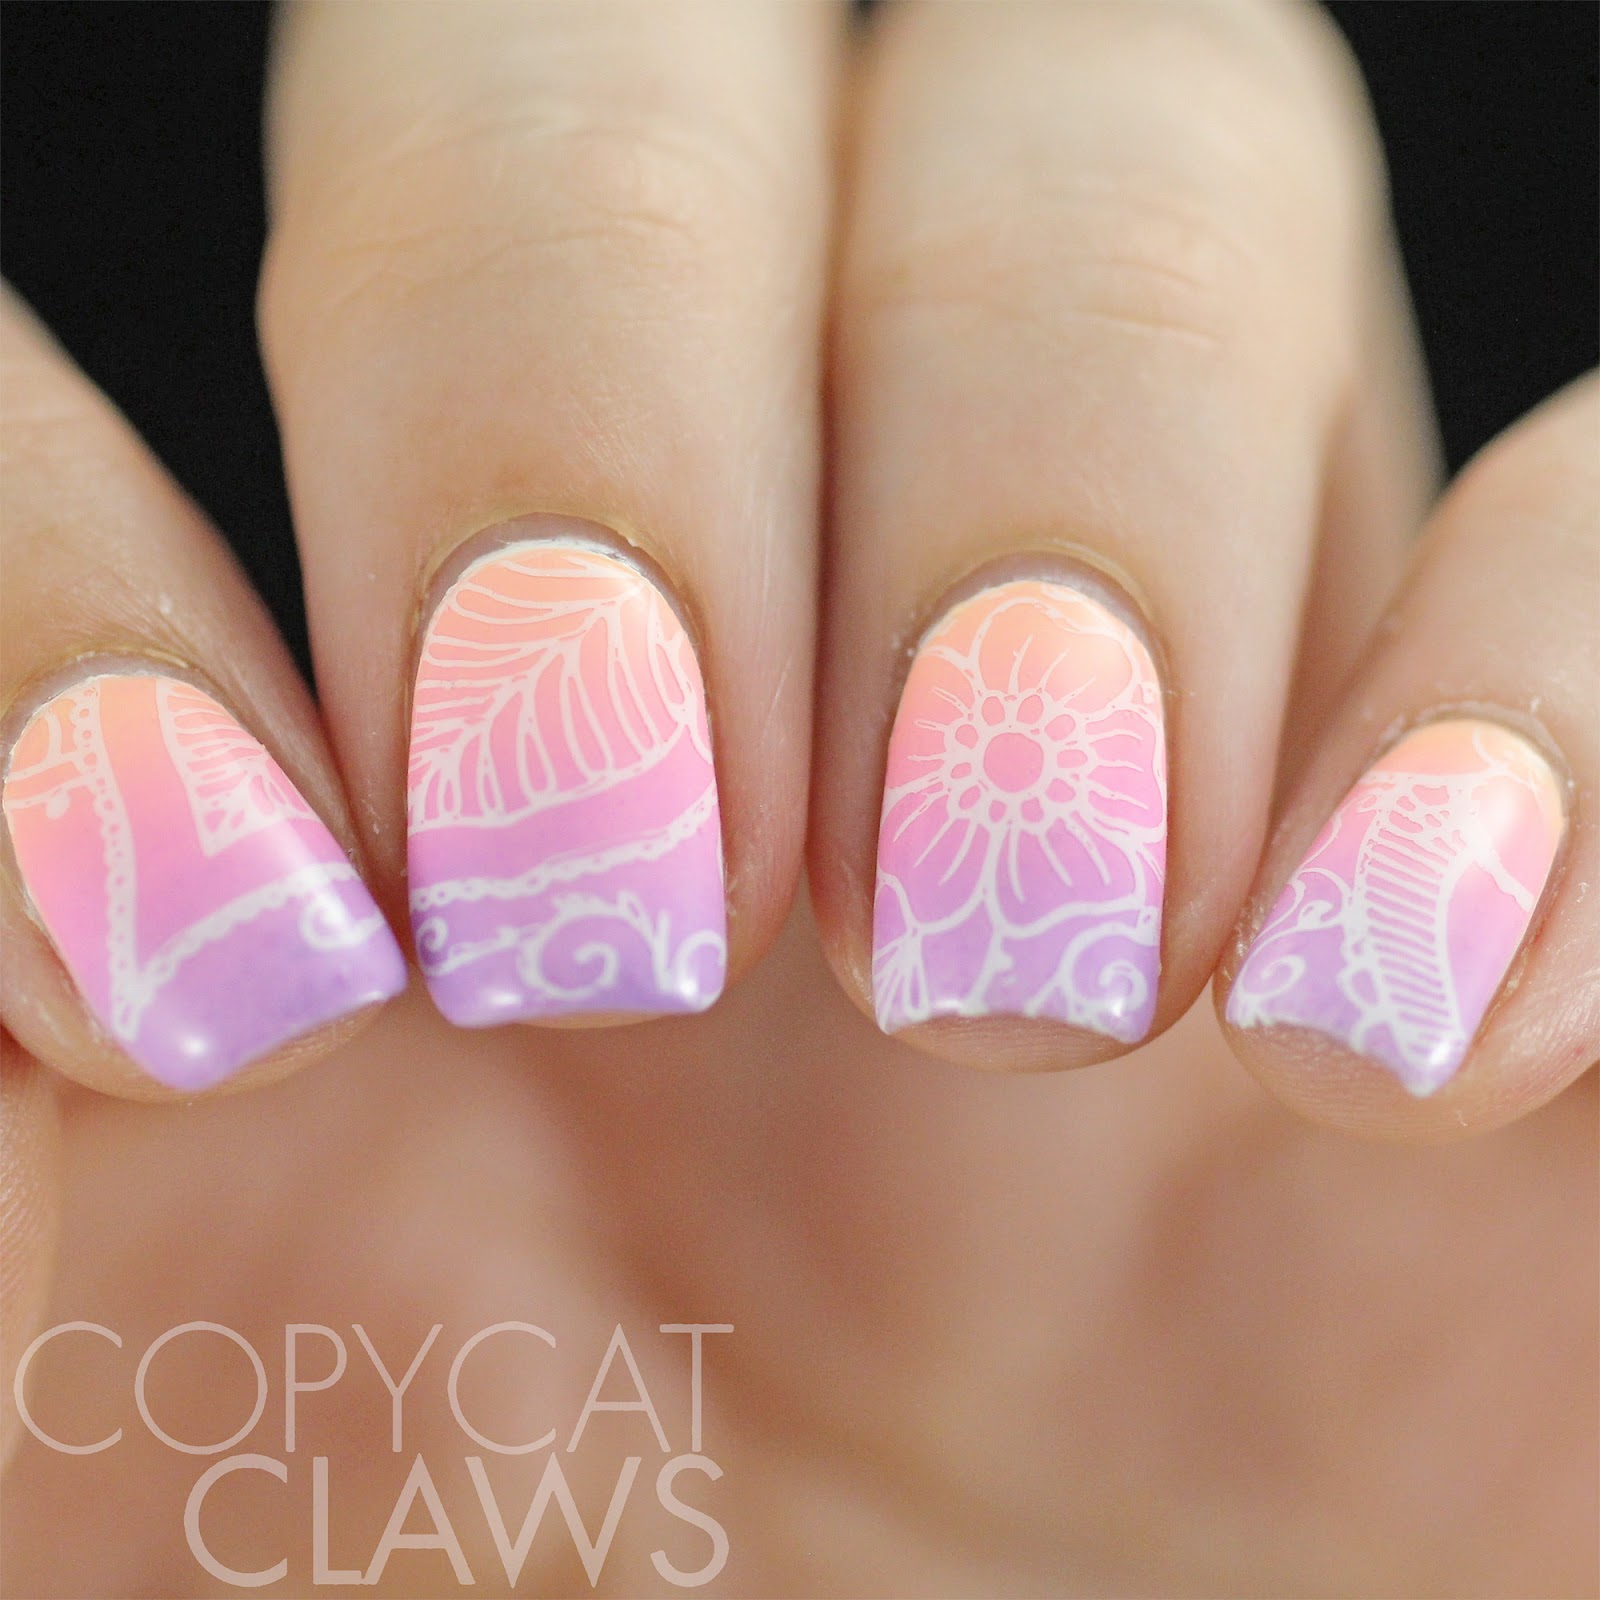 Copycat Claws: UberChic Beauty Mandala Love Stamping Plate Review